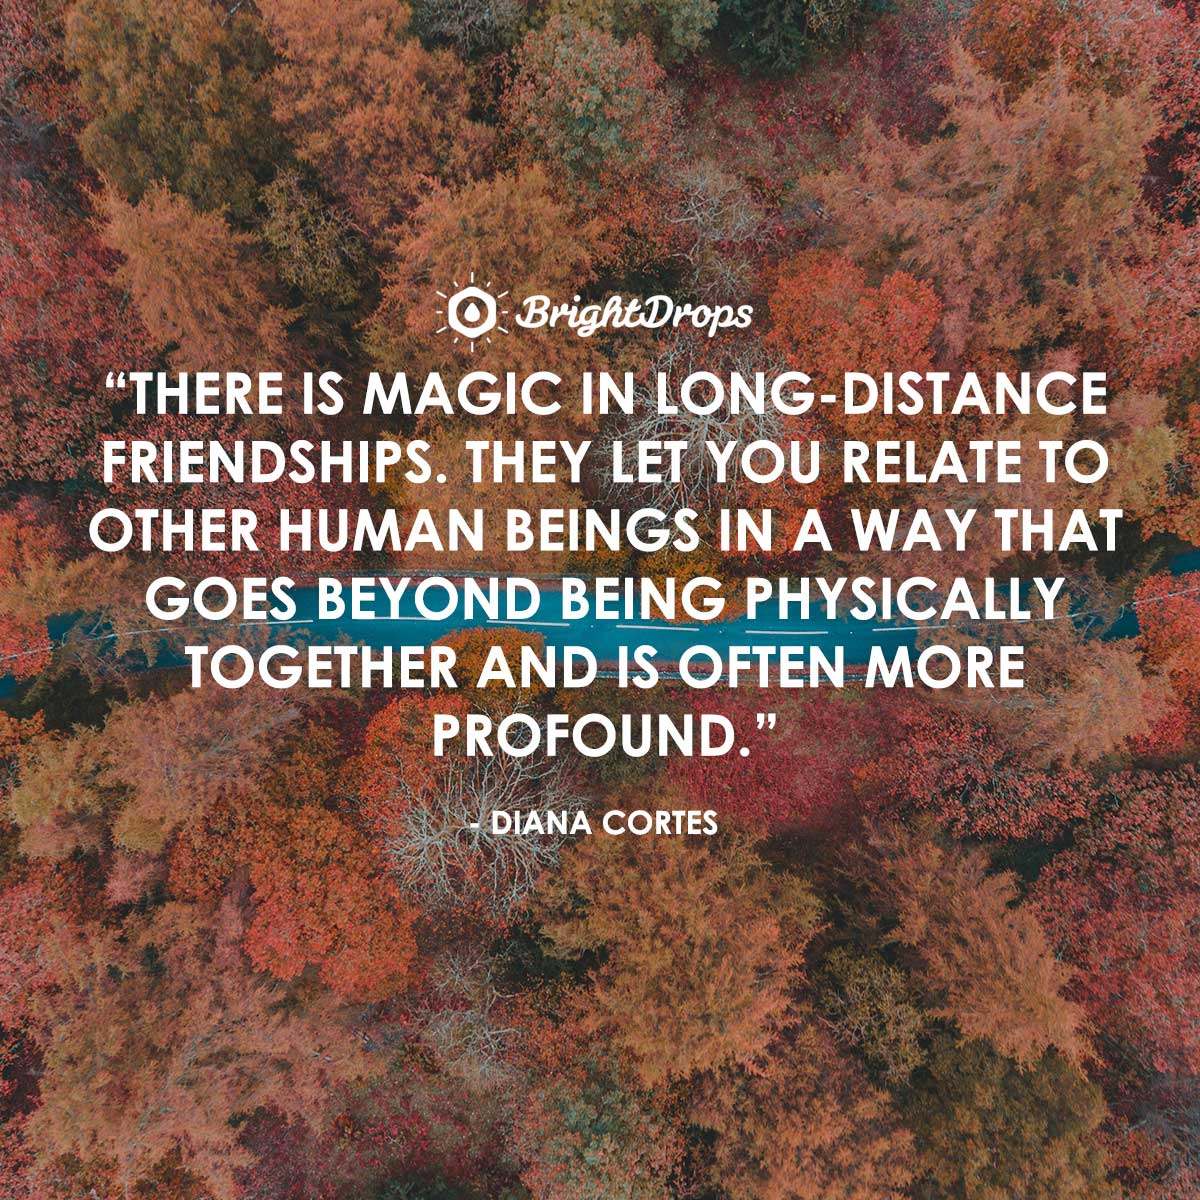 There is magic in long-distance friendships. They let you relate to other human beings in a way that goes beyond being physically together and is often more profound. - Diana Cortes